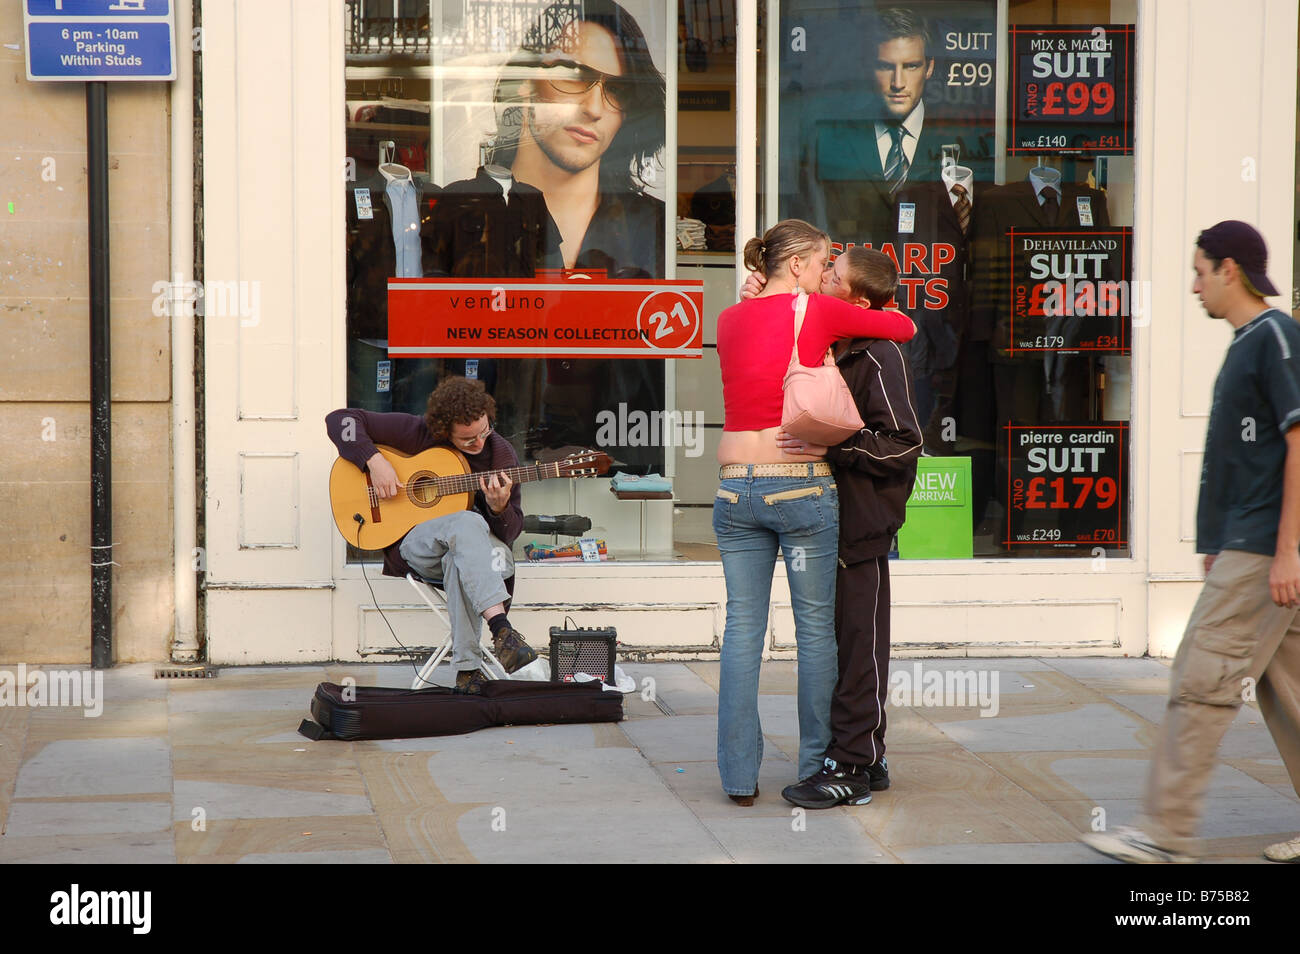 A young couple snogging in one of the main streets of Oxford city centre next to a busker playing classical guitar. - Stock Image